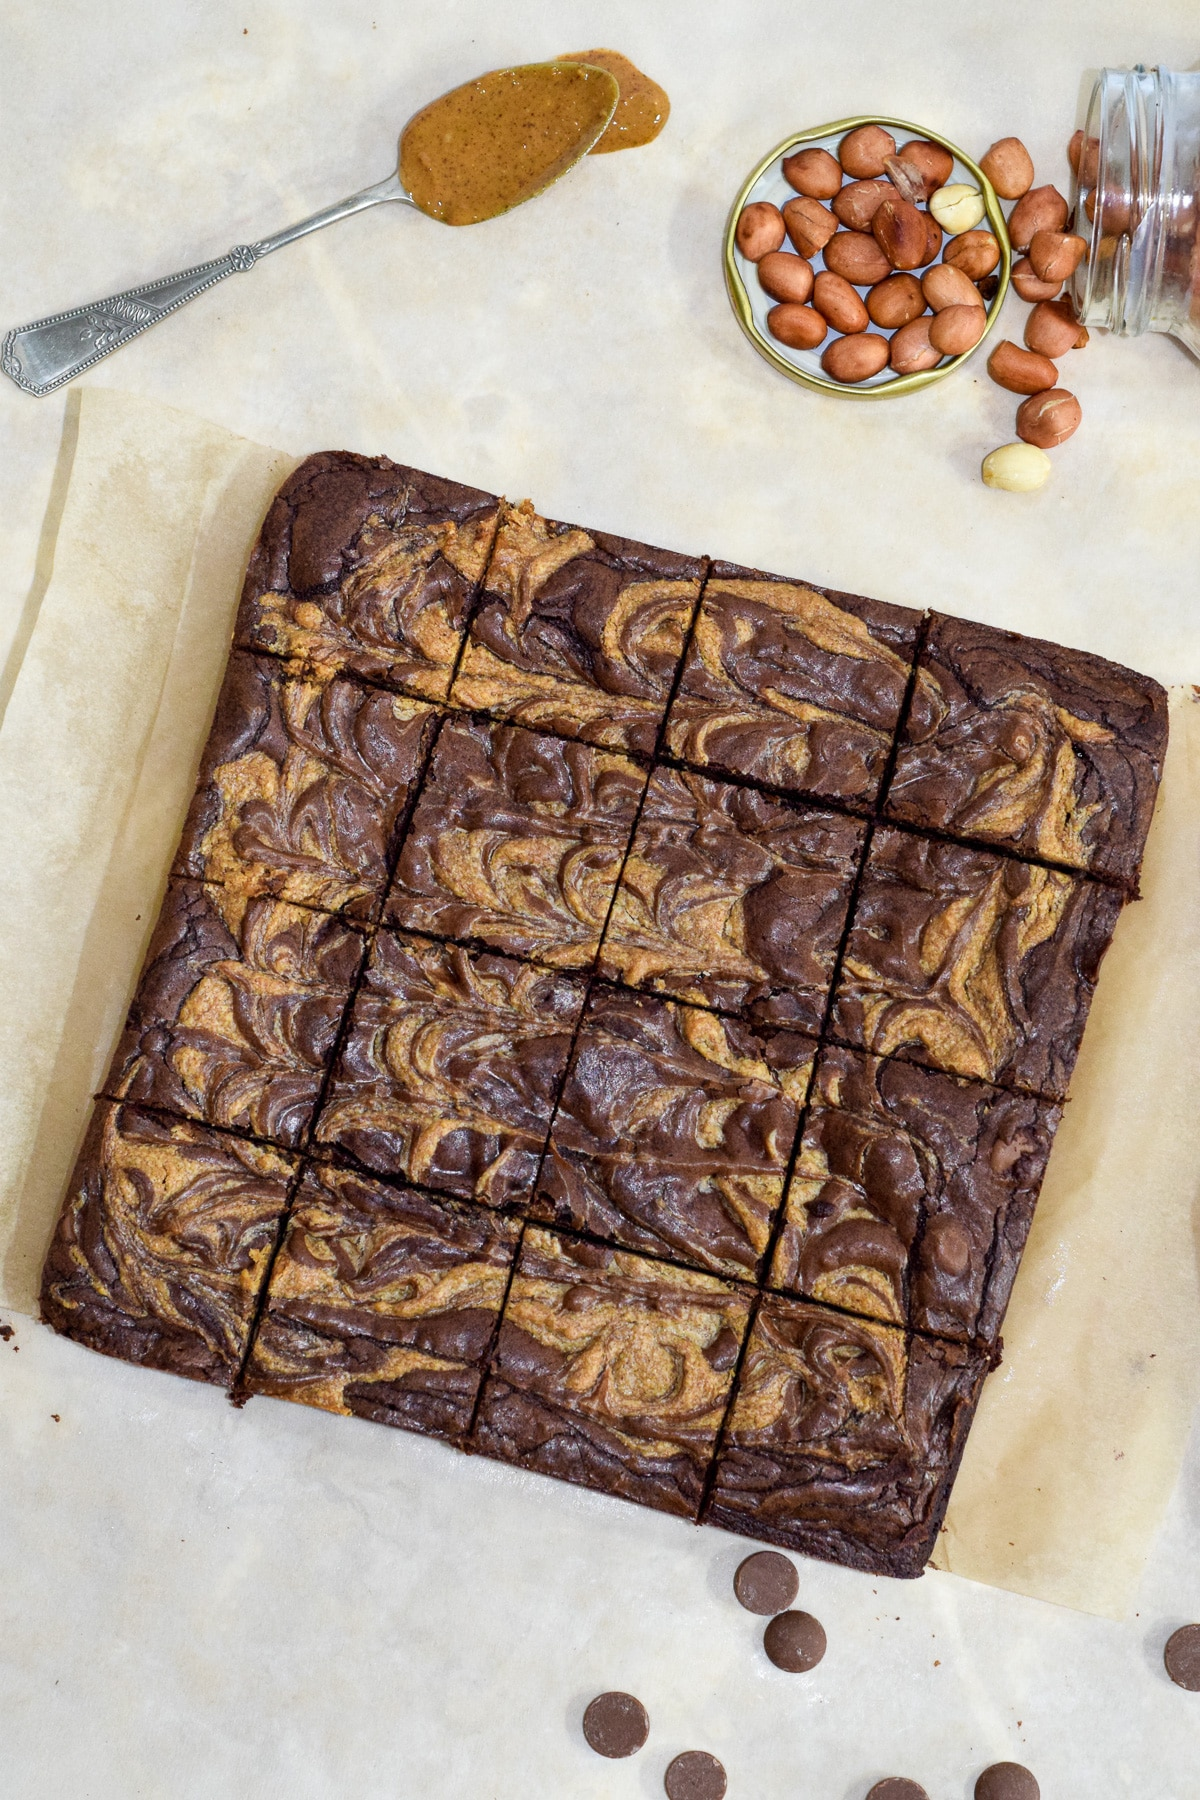 Chocolate peanut butter swirl brownies cut into slices